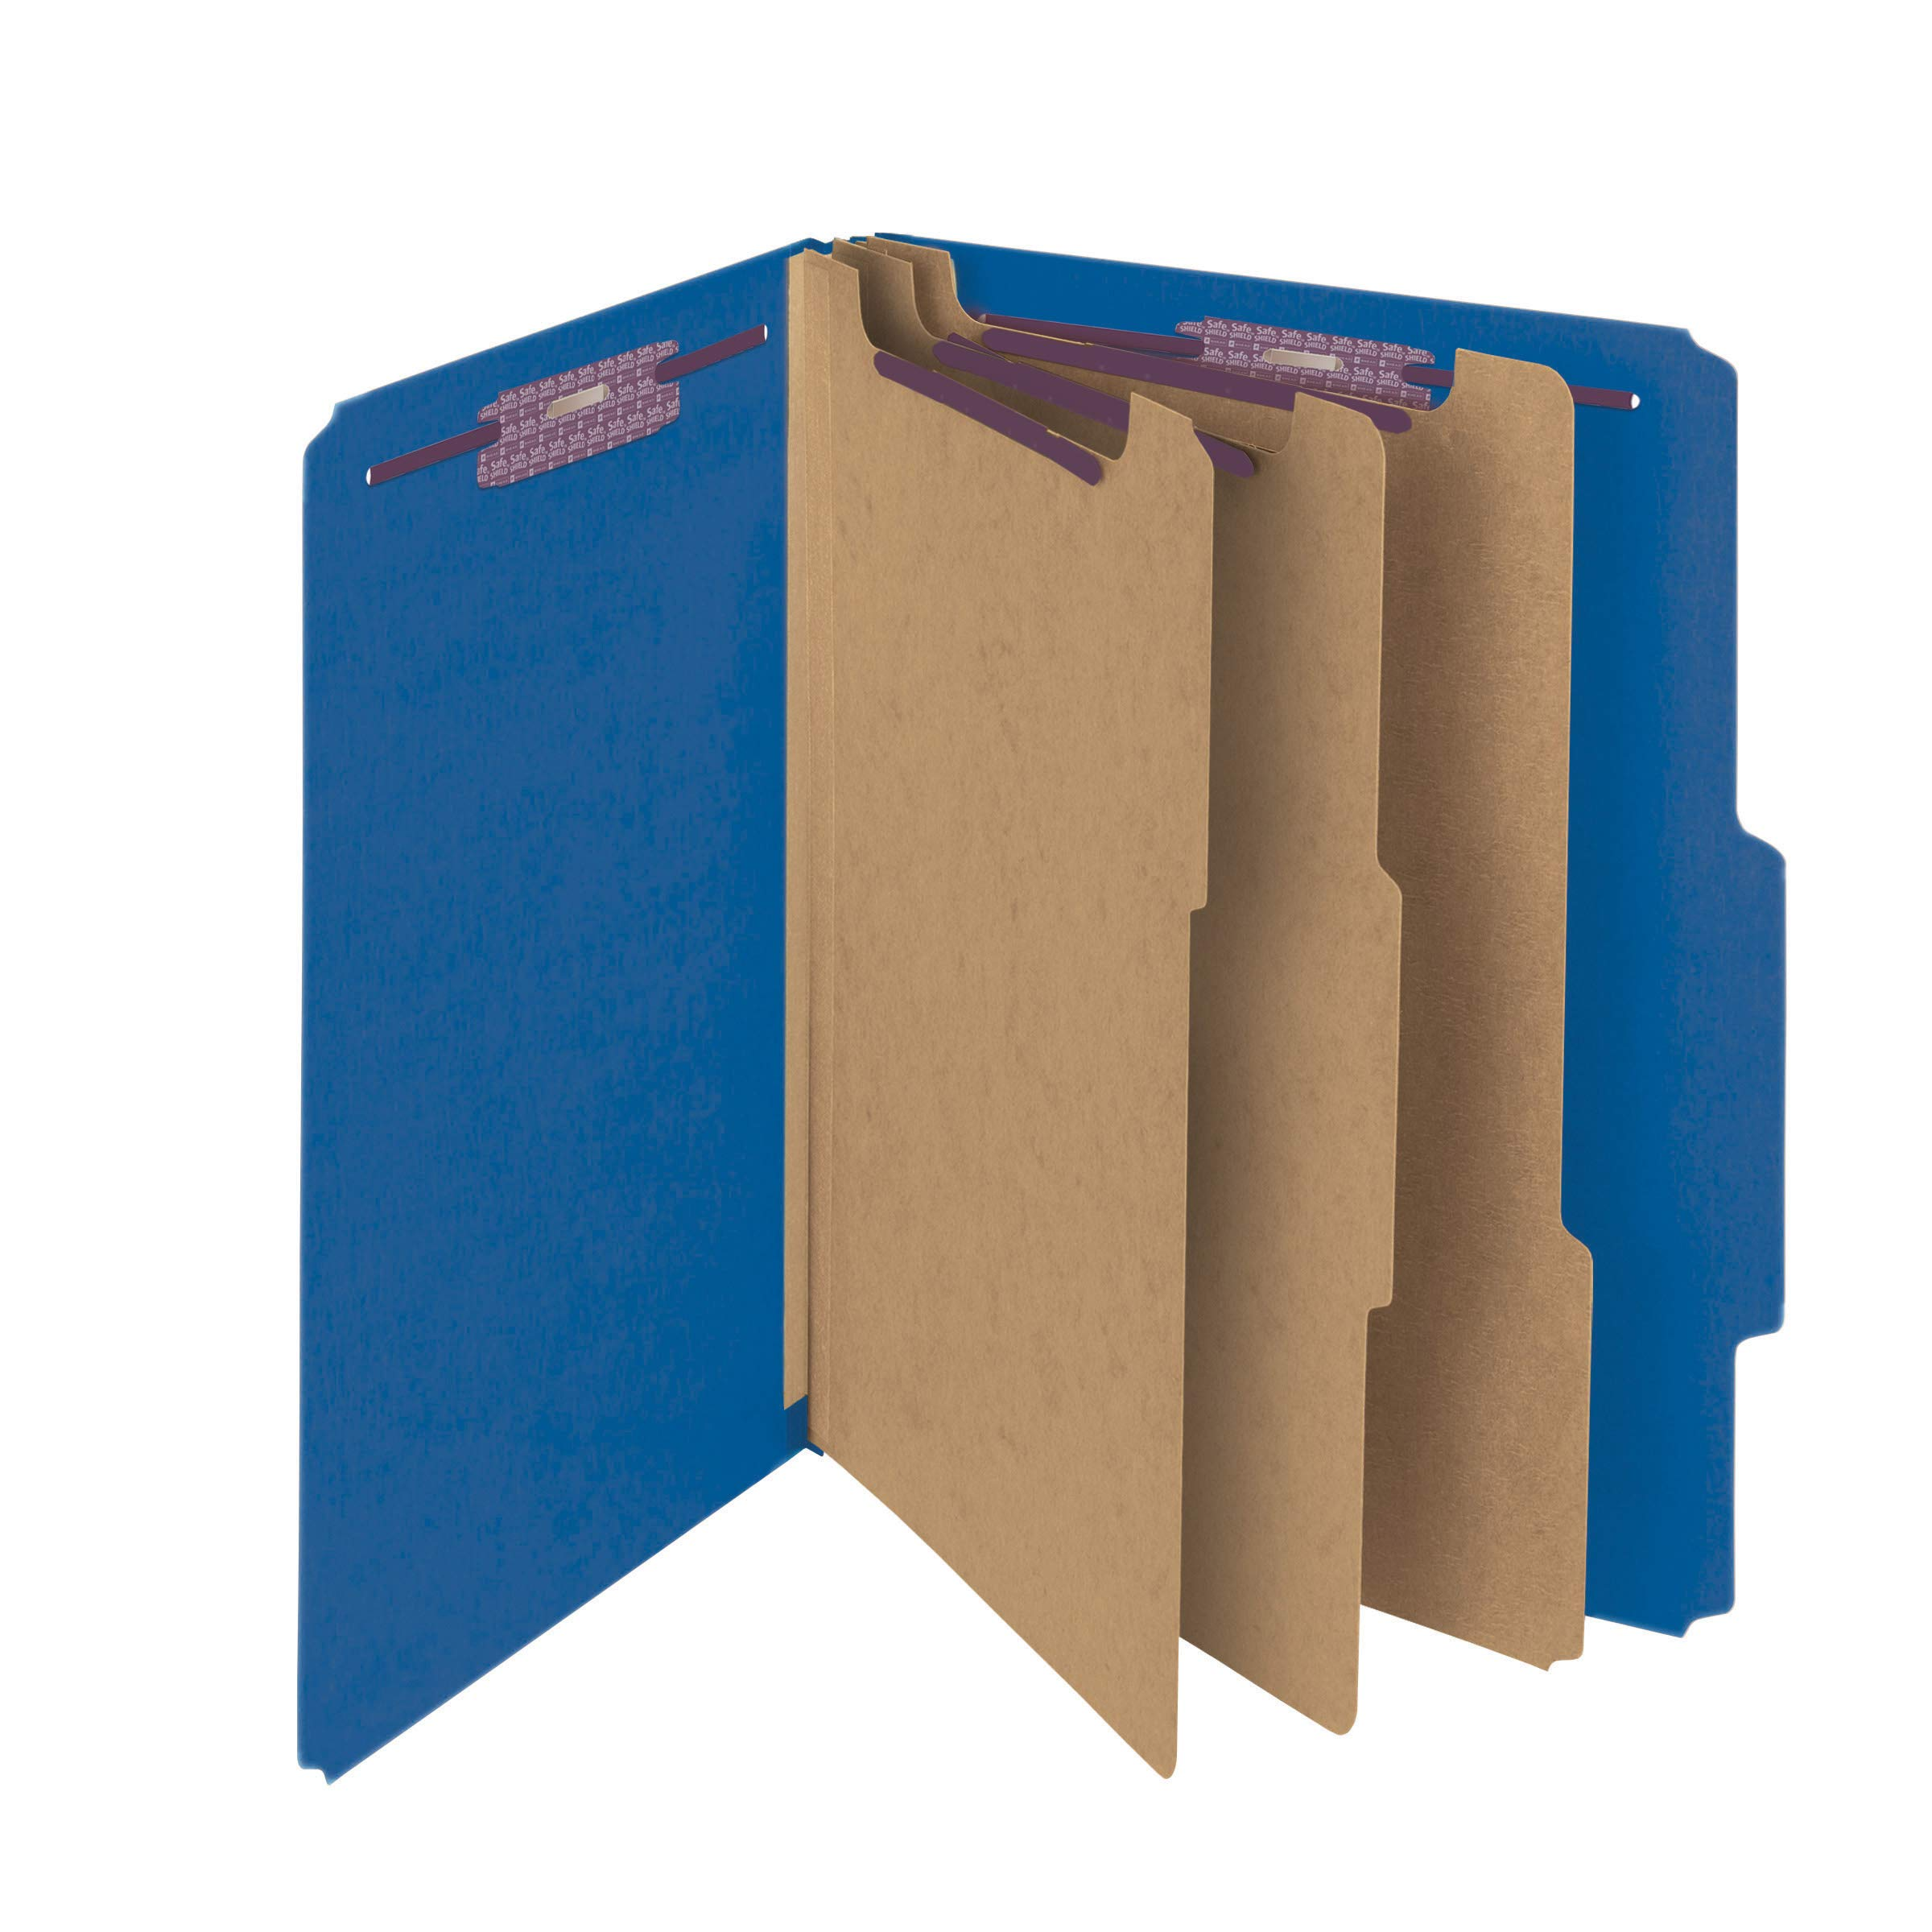 Smead Pressboard Classification File Folder with SafeSHIELD Fasteners, 3 Dividers, 3'' Expansion, Legal Size, Dark Blue, 10 per Box (19096)